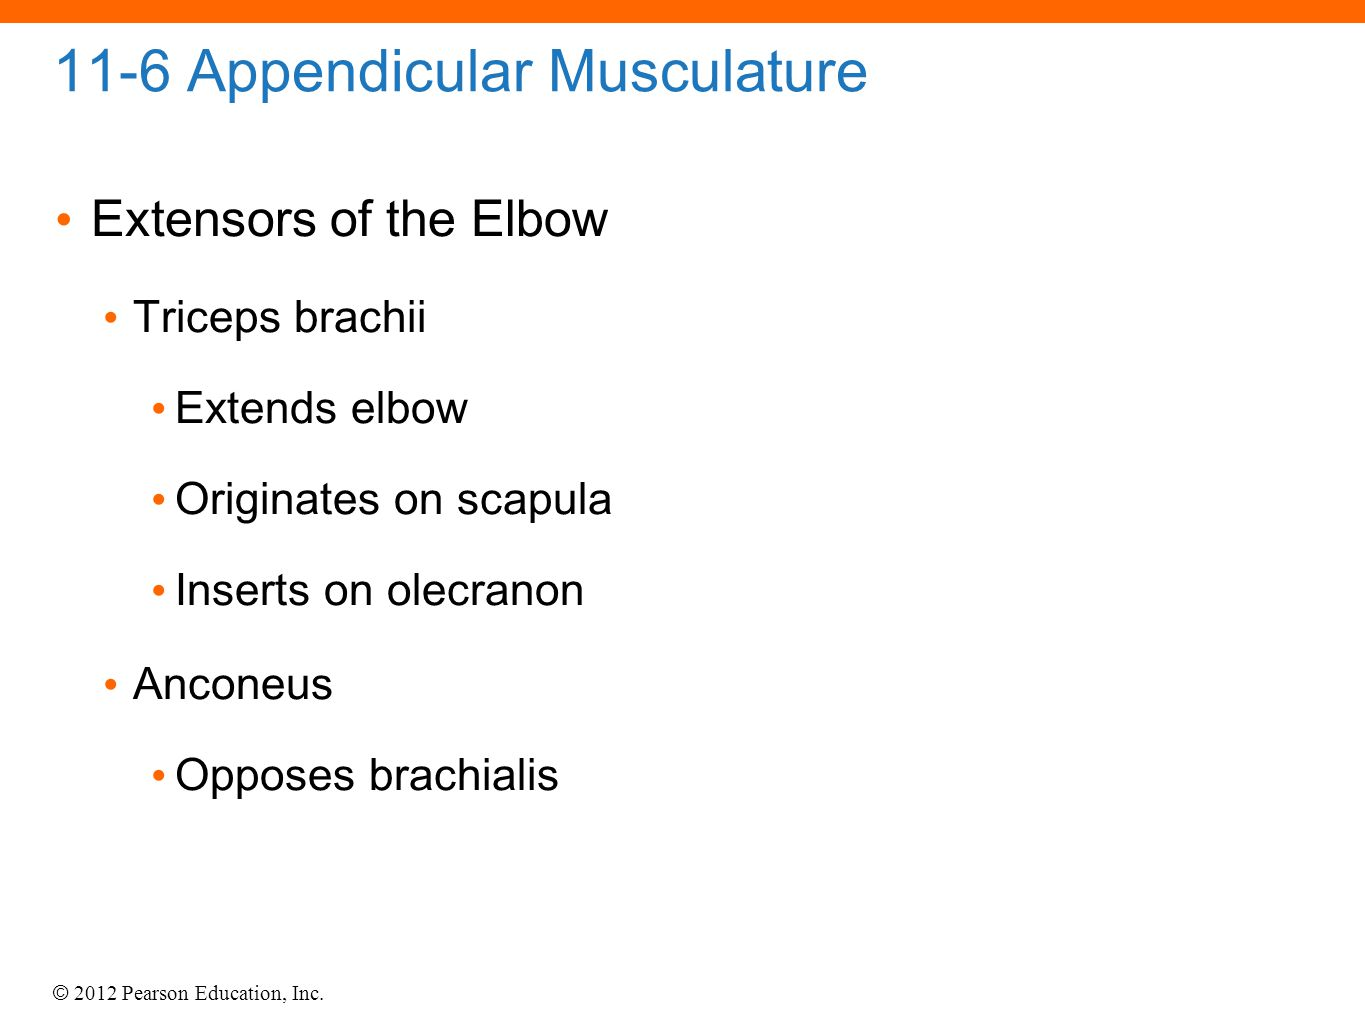 © 2012 Pearson Education, Inc. 11-6 Appendicular Musculature Extensors of the Elbow Triceps brachii Extends elbow Originates on scapula Inserts on ole